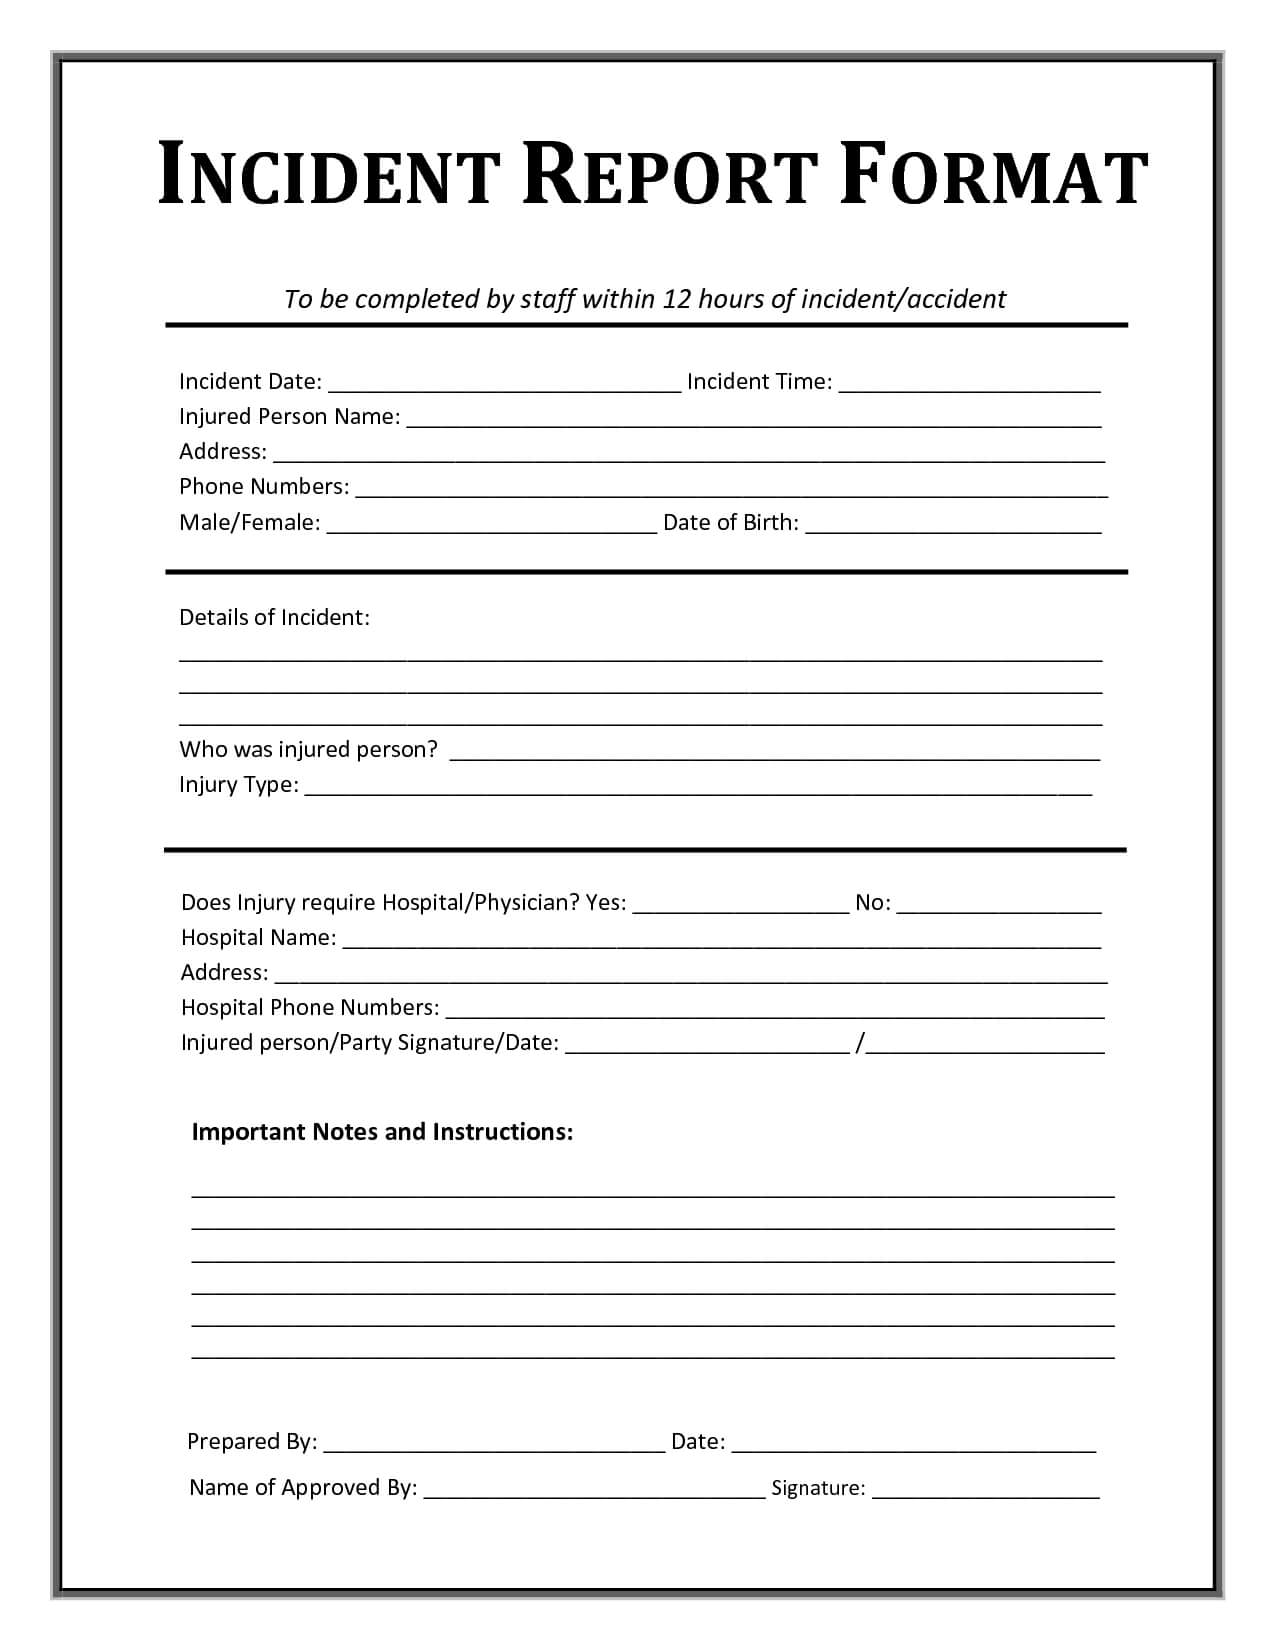 Incident Report Template | Incident Report Form, Incident Regarding Employee Incident Report Templates